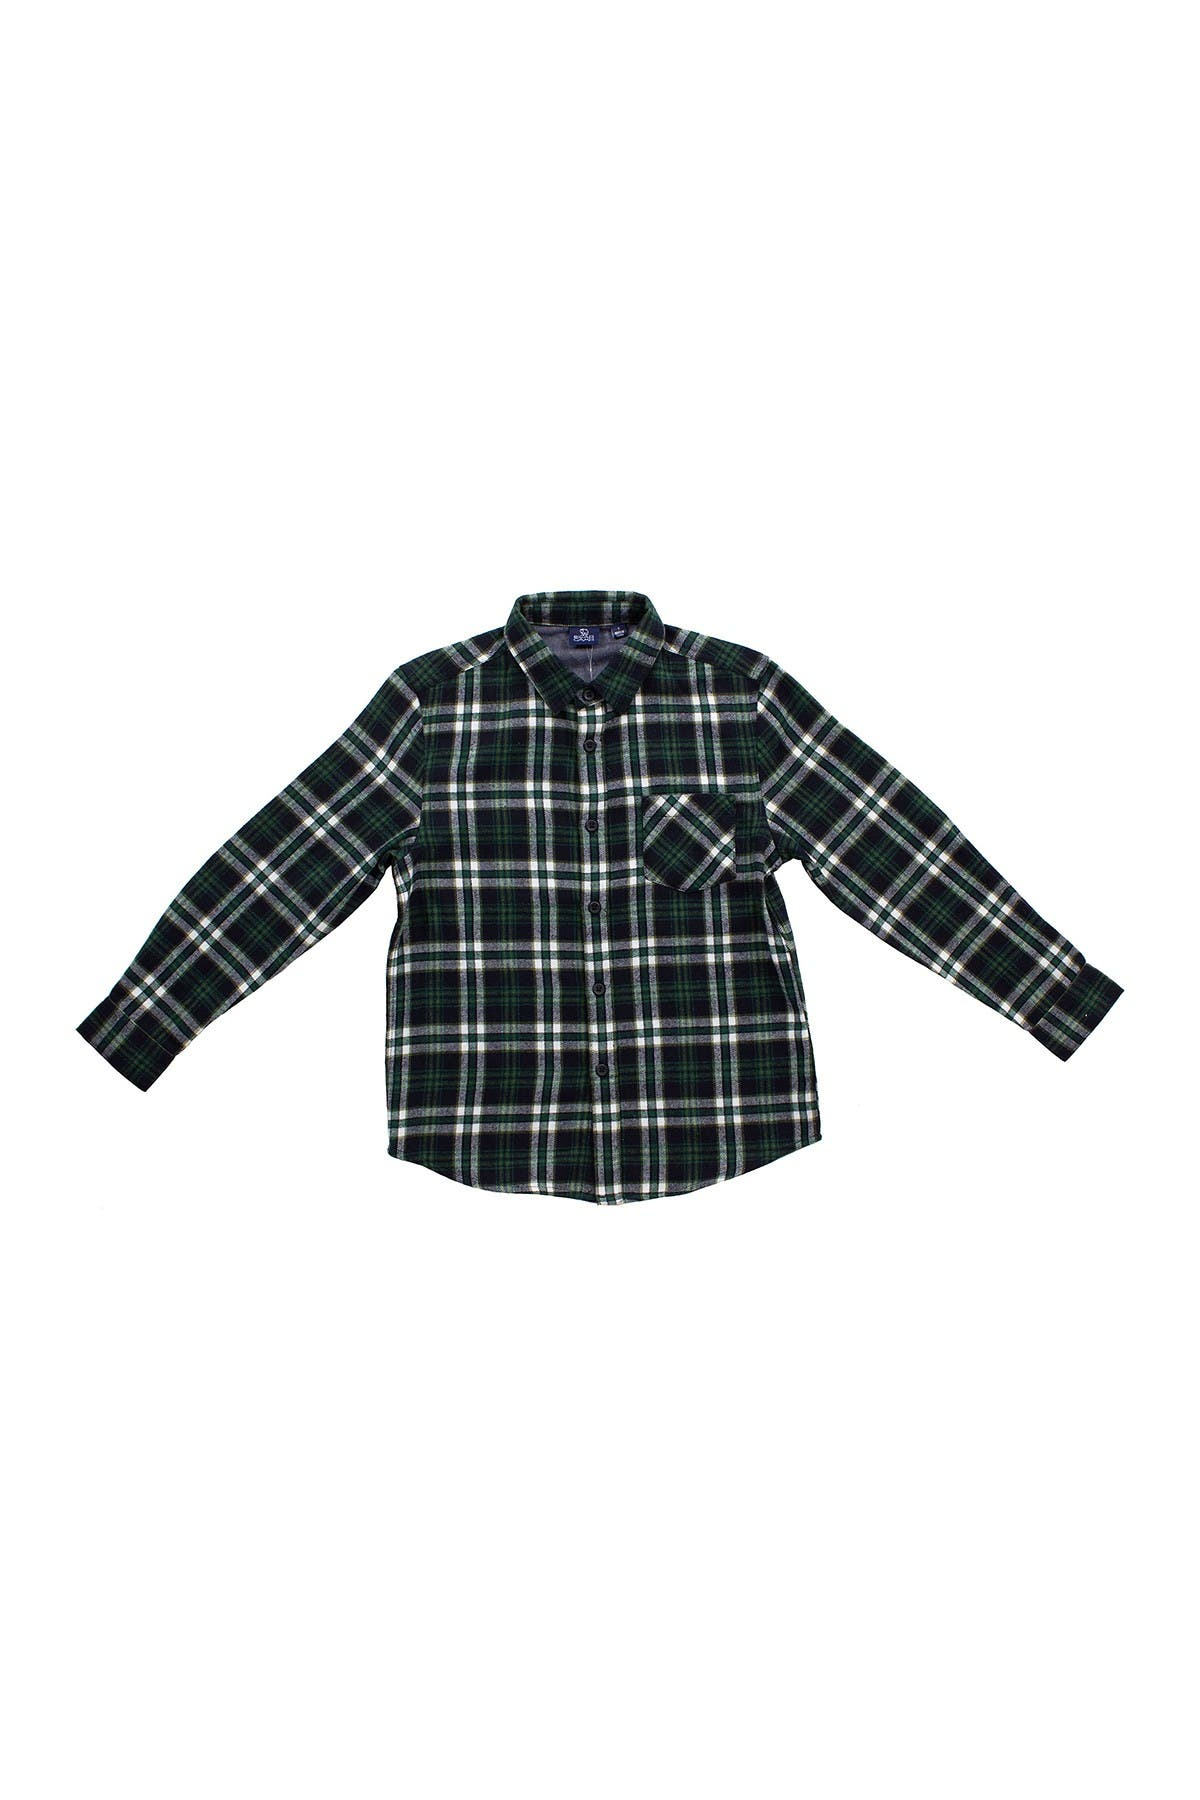 Image of BEAR CAMP Flannel Plaid Button Down Shirt